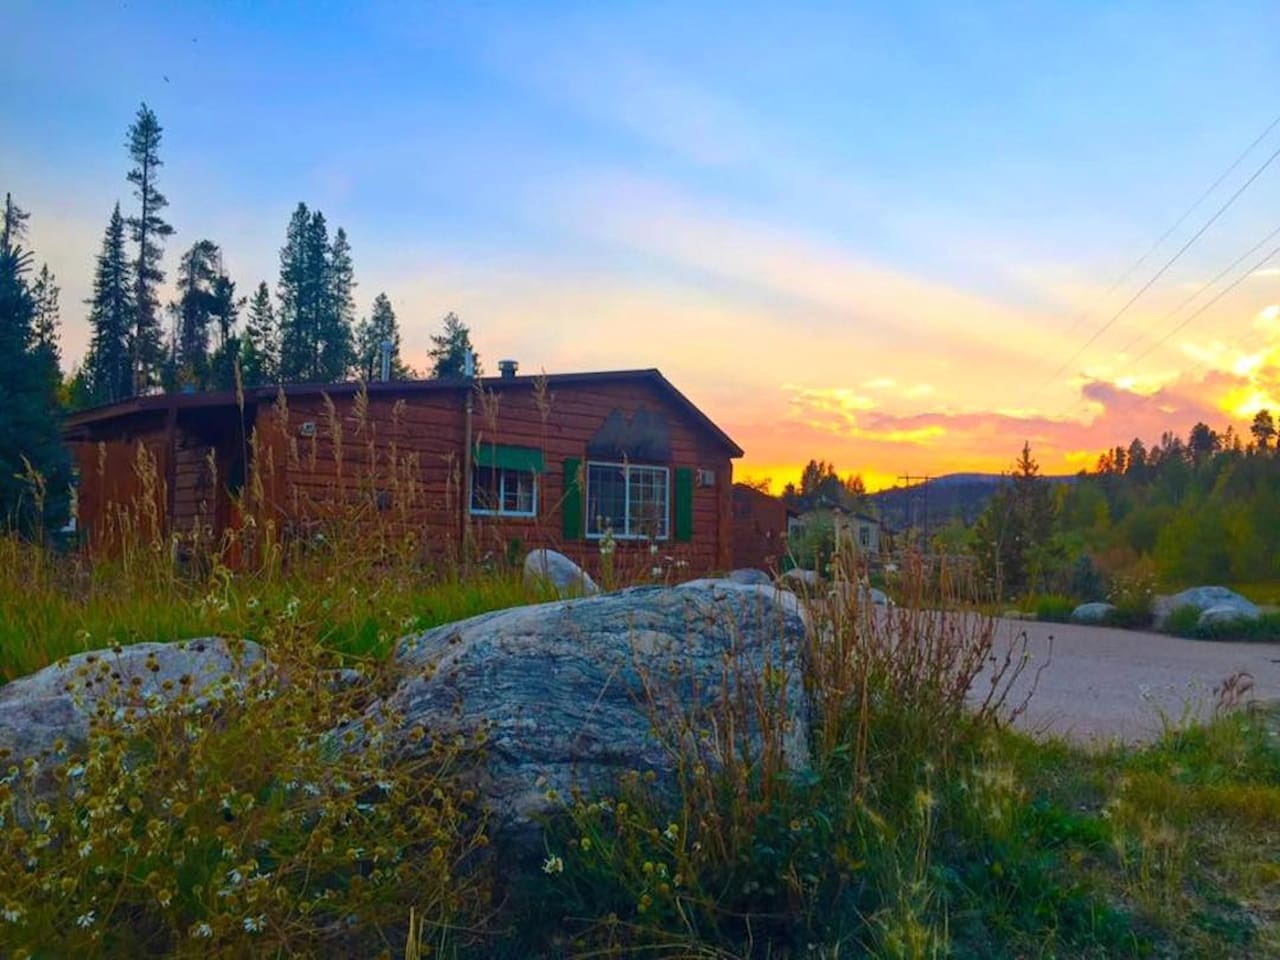 Sunset at this cozy cabin